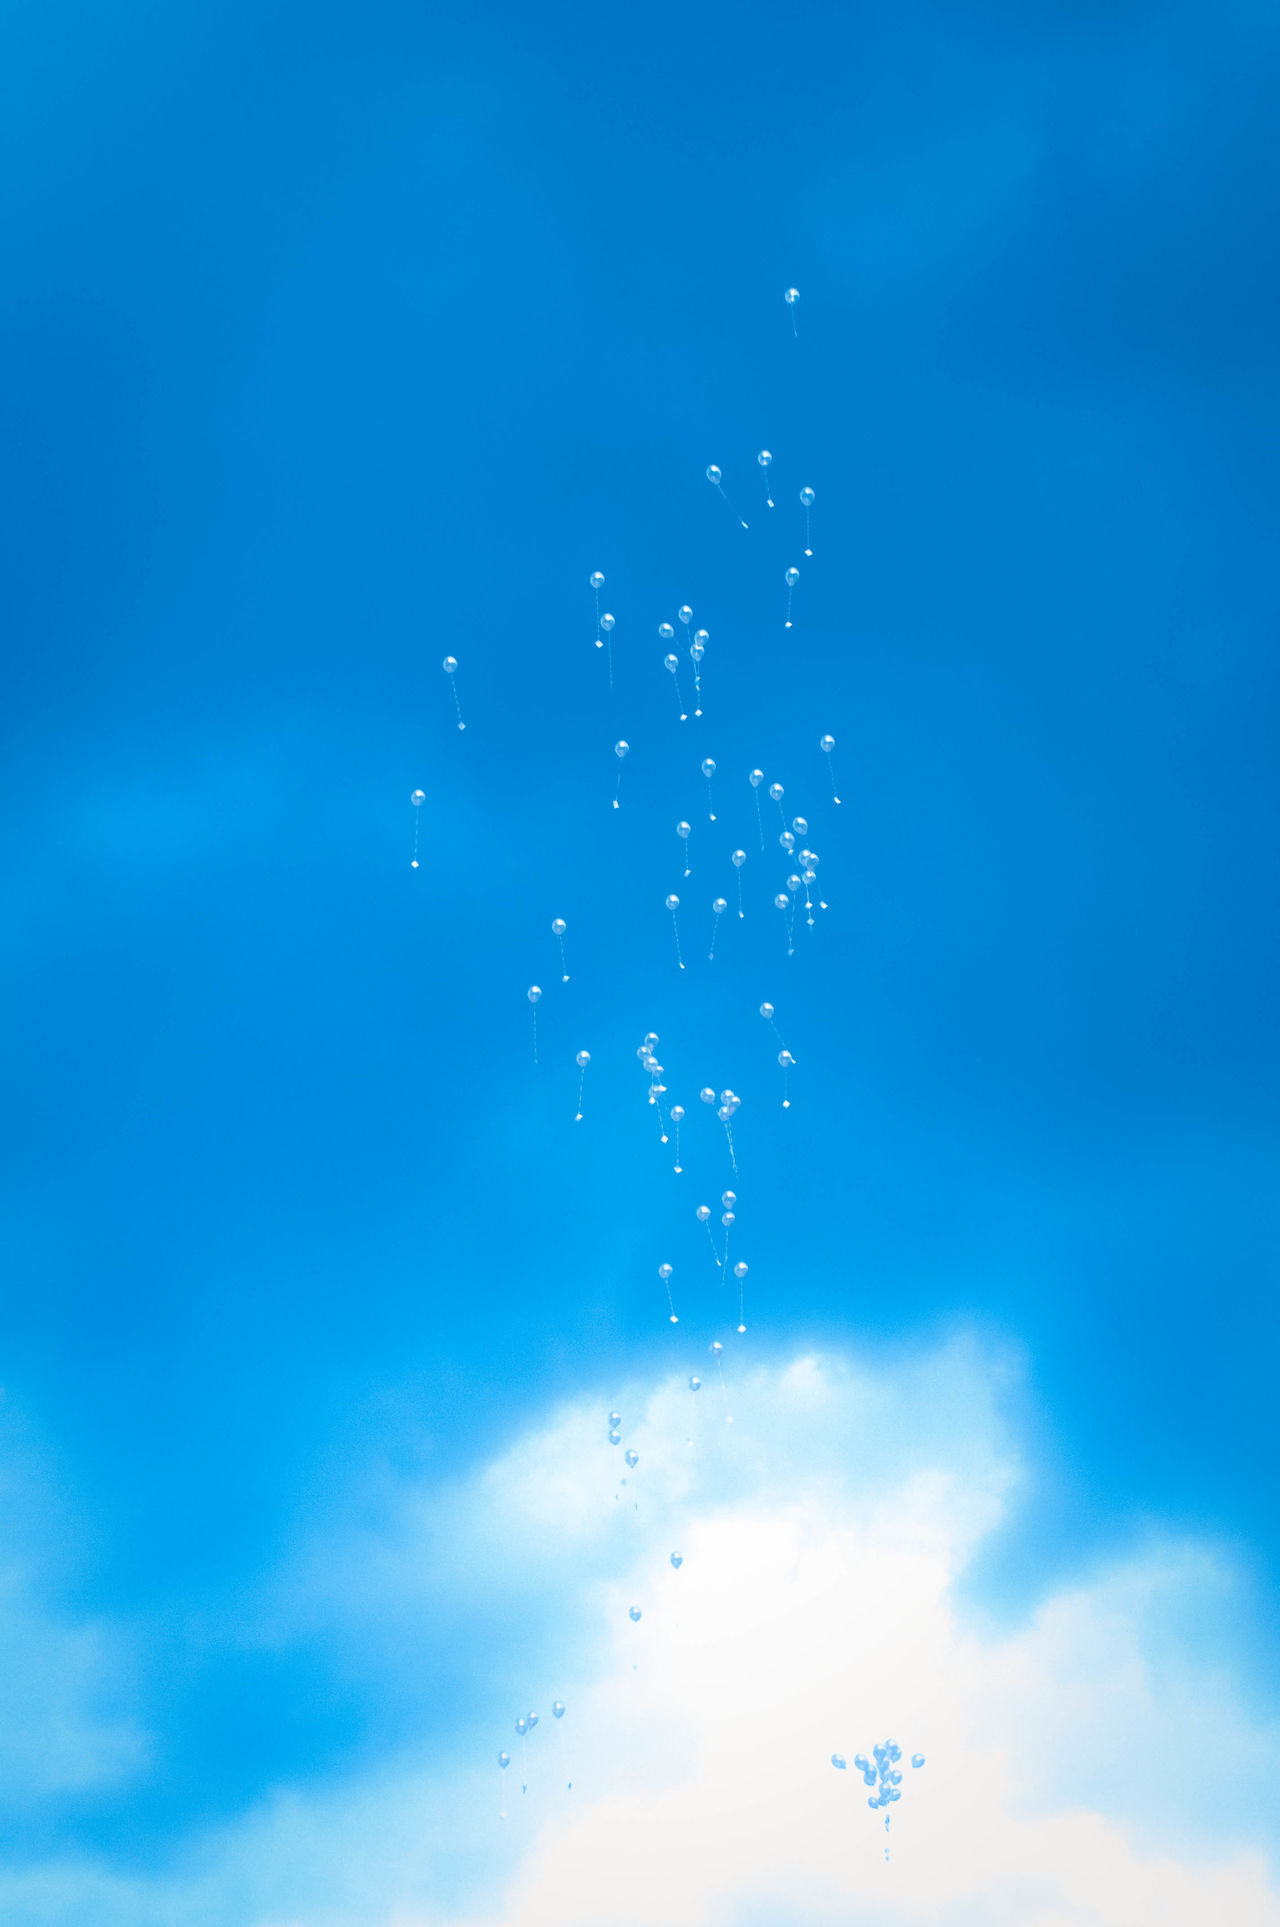 Balloons Blue Sky Celebration Close-up Cloudes Day Flowers Fred No People No People, No Poieo Wedding